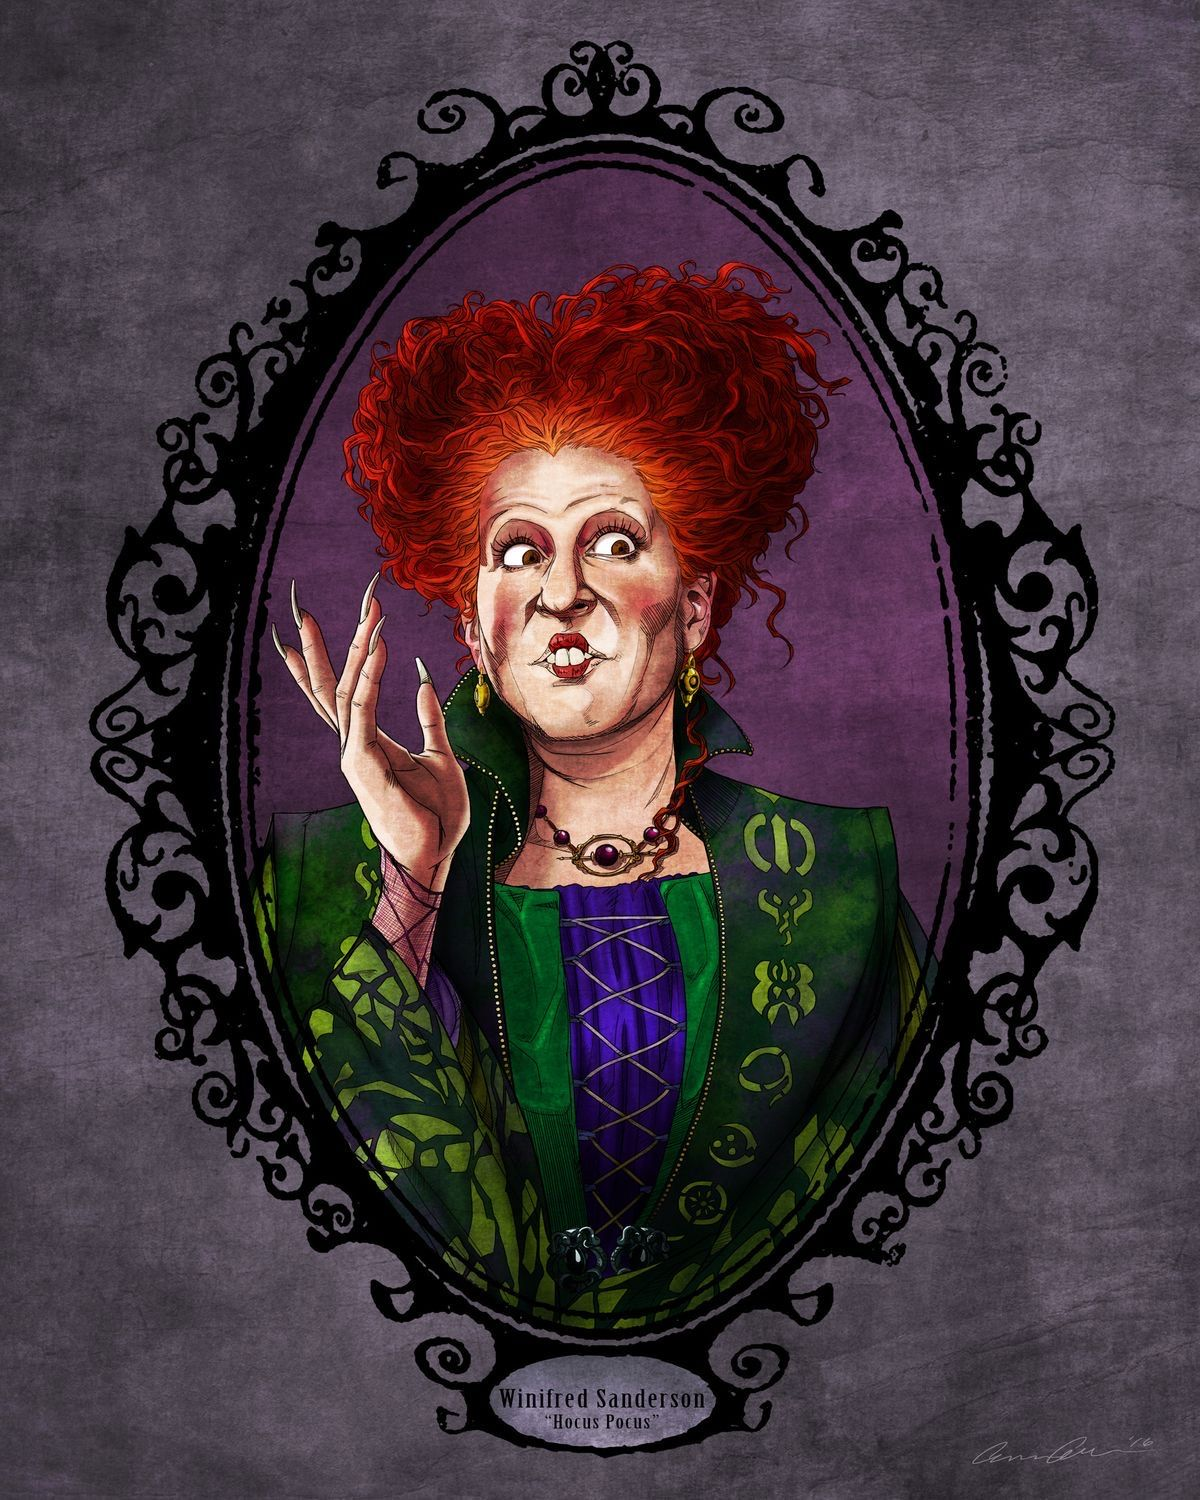 Pin by Jeanne Loves Horror💀🔪 on Hocus Pocus in 2020 (With